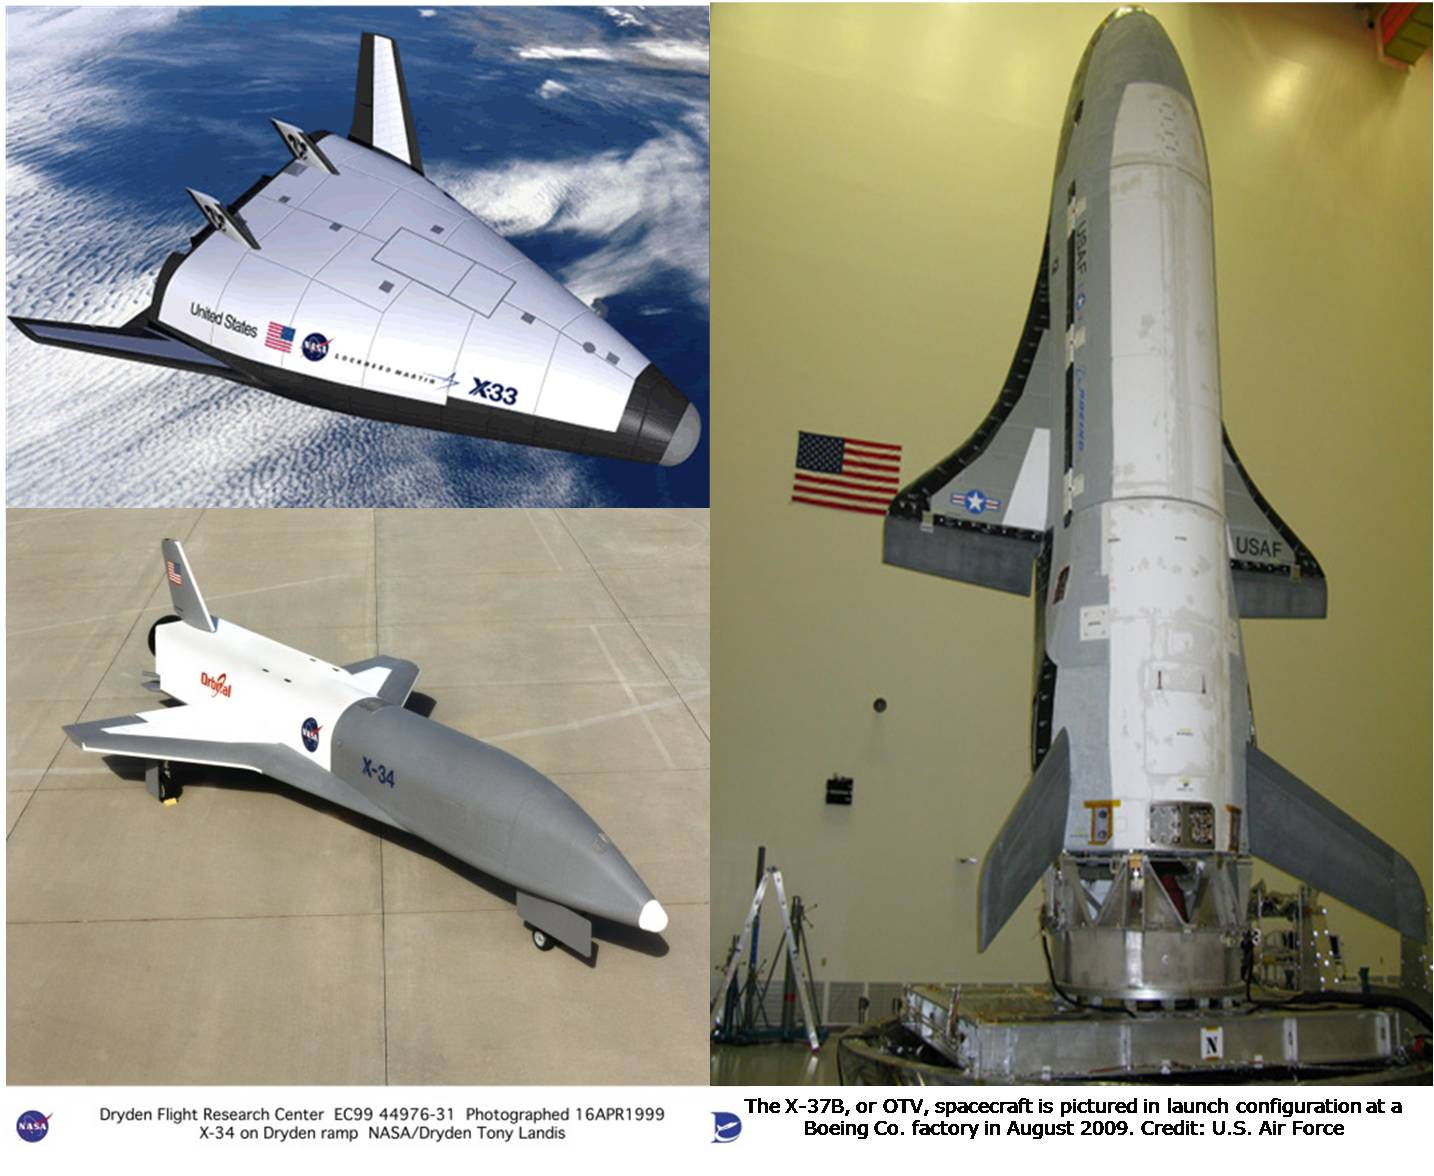 Revisited: To X-37B or not to X-37B? That is the question ...